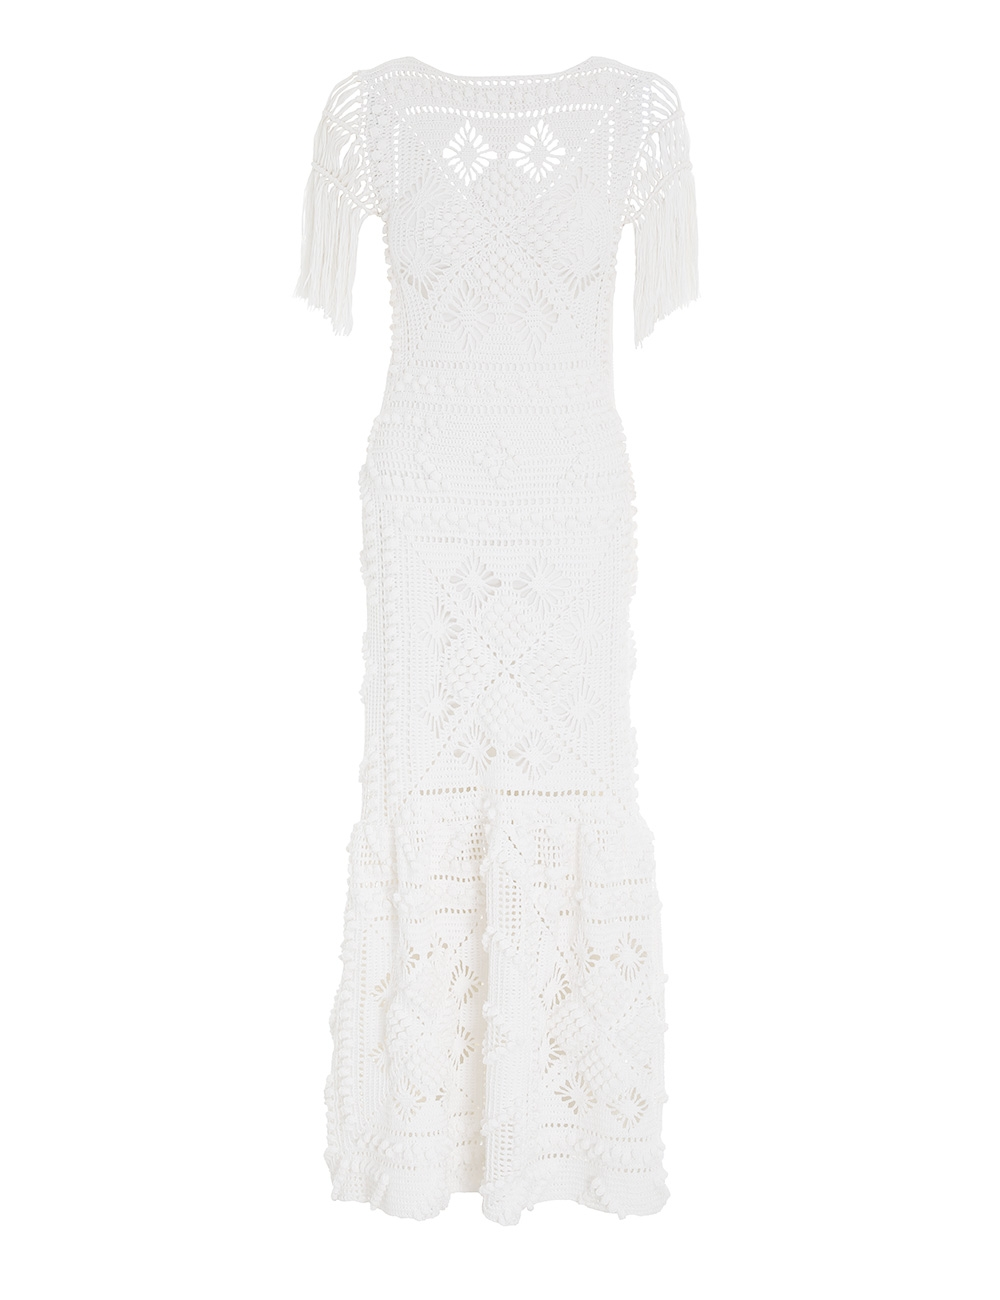 Candescent Hand Crochet Dress